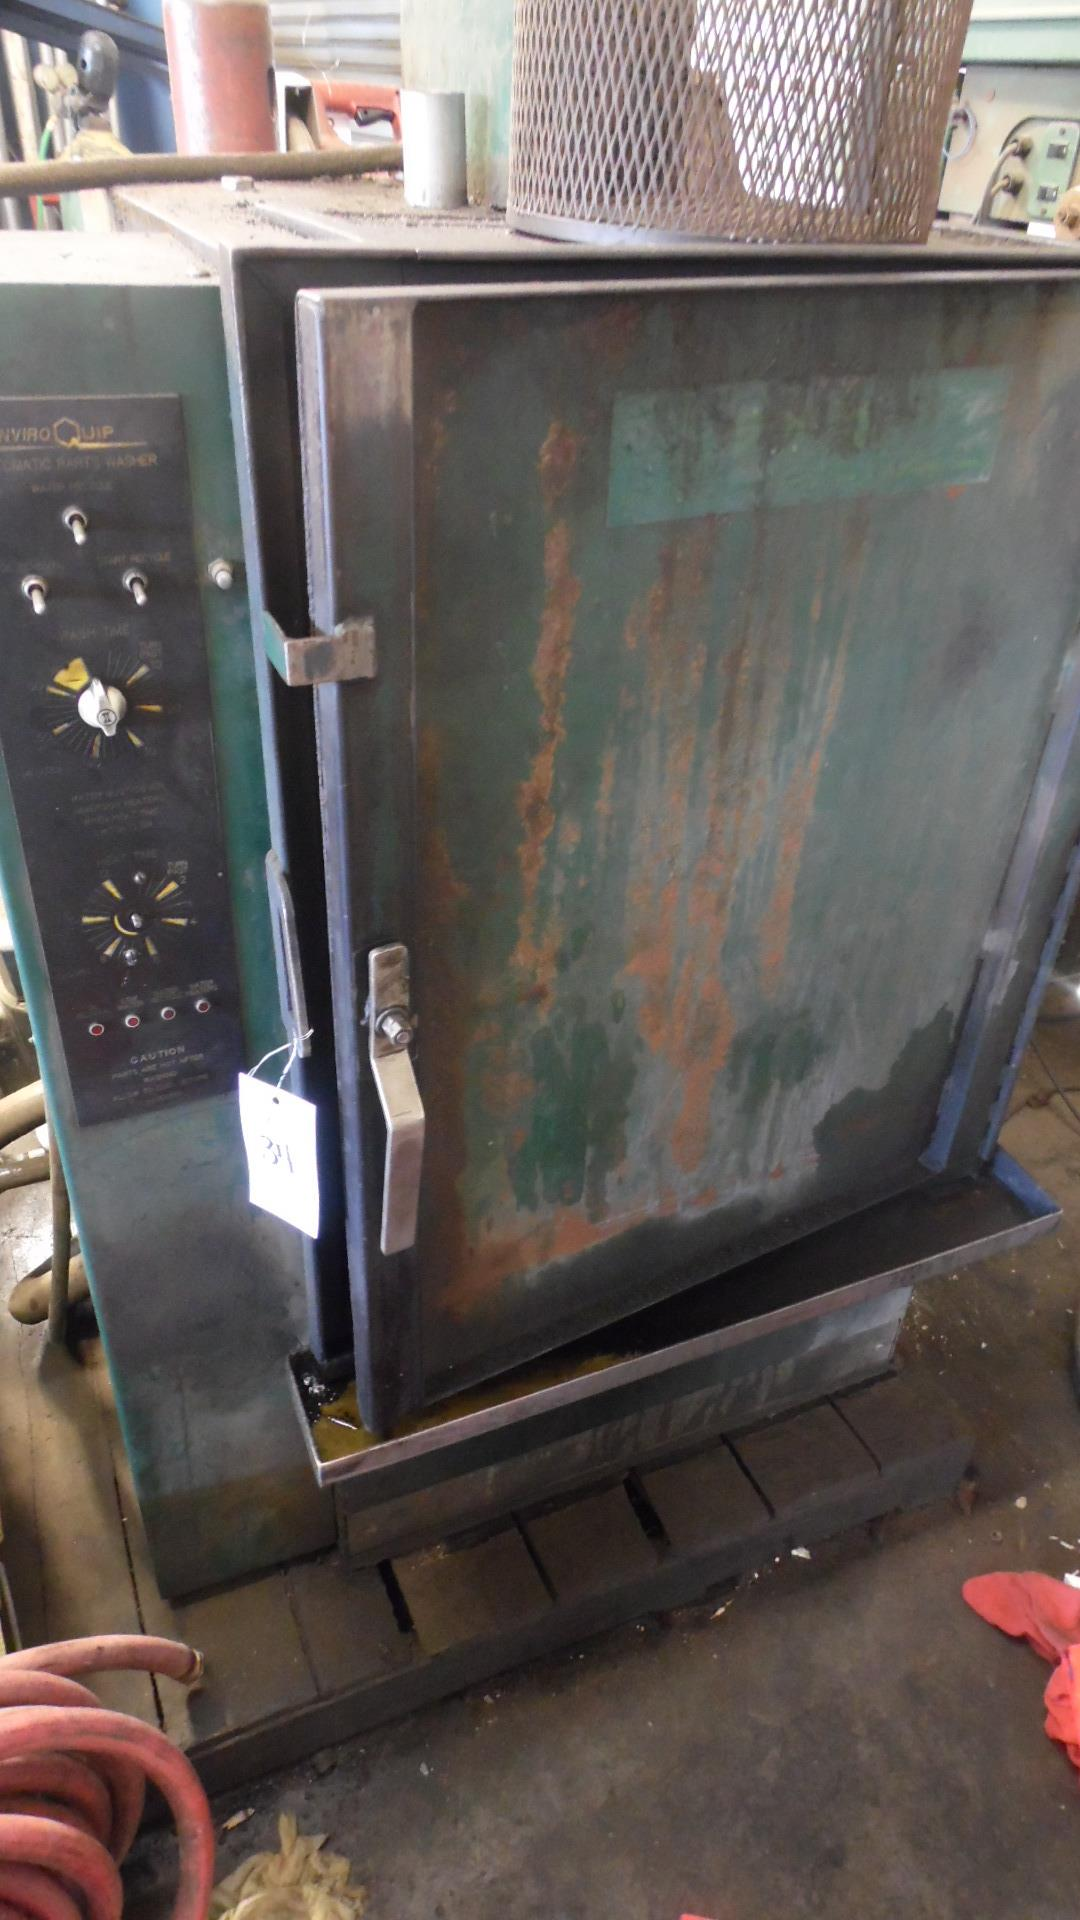 ENVIRO QUIP AUTOMATIC PARTS WASHER